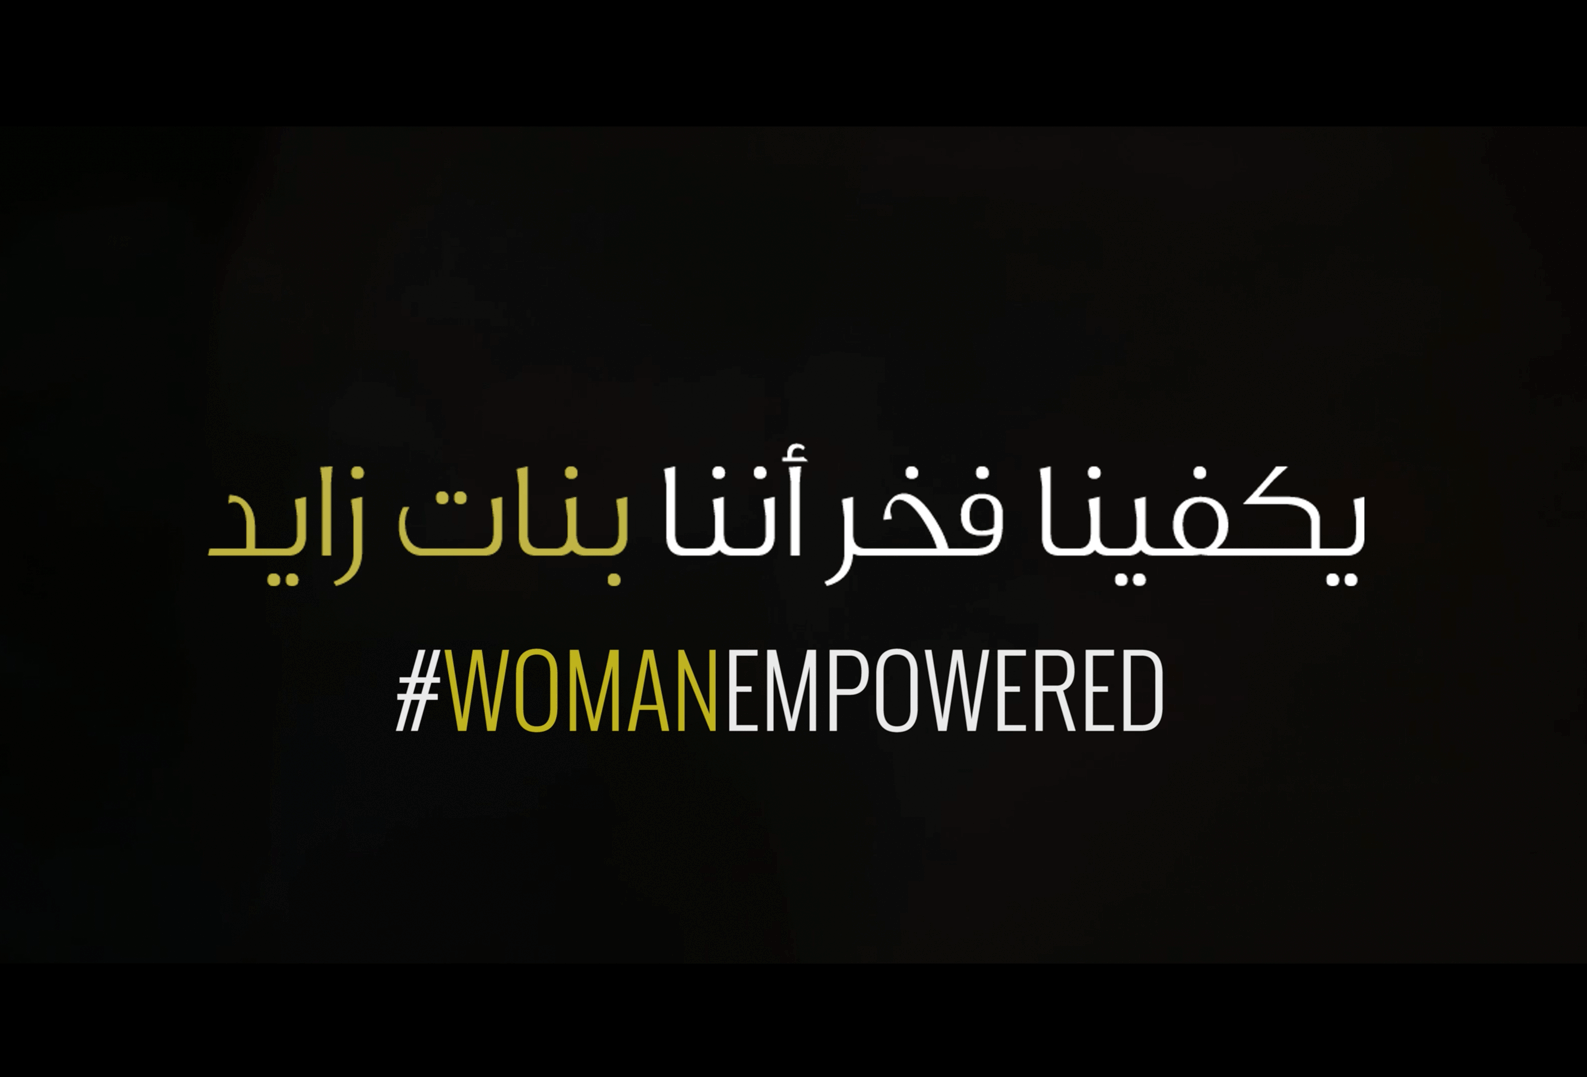 WOMAN EMPOWERED